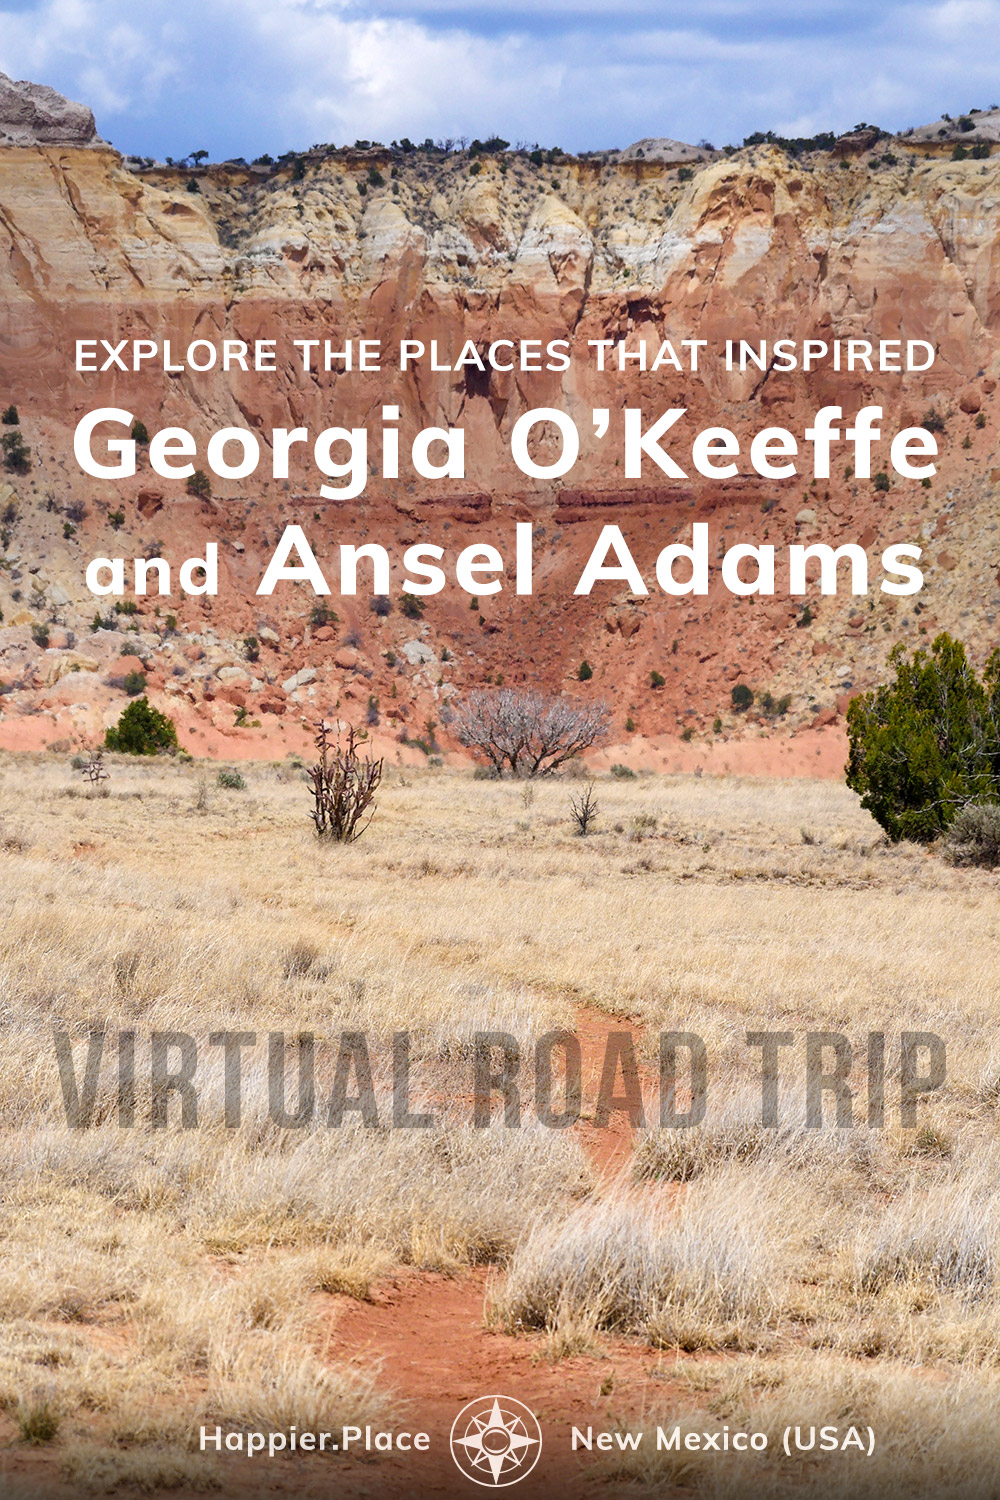 explore the places that inspired georgia o'keeffe and ansel adams, new mexico, virtual road trip, happier place, ghost farm, trail, red rocks